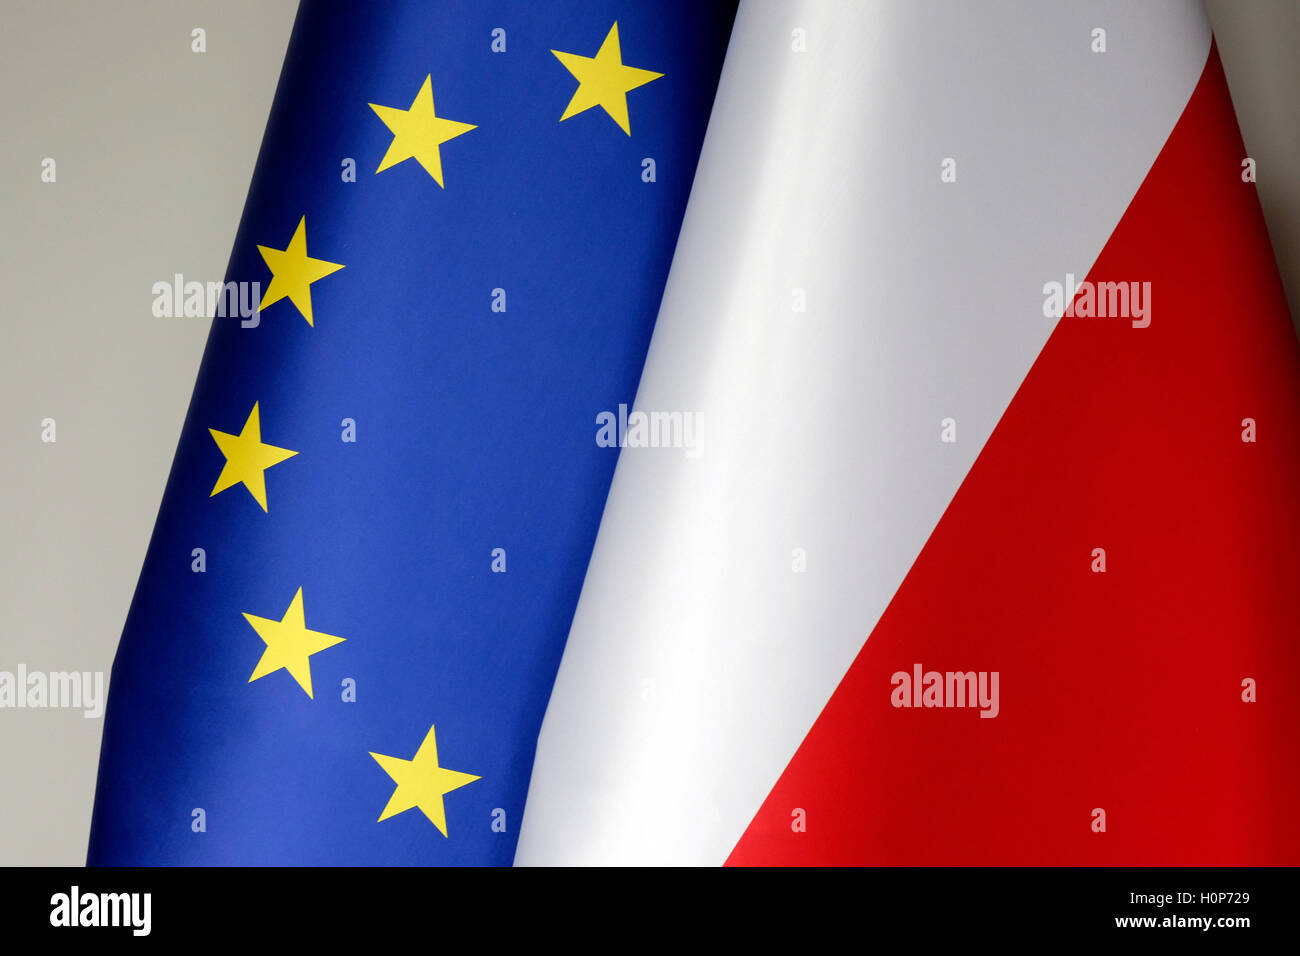 The Polish and the European union flags Stock Photo